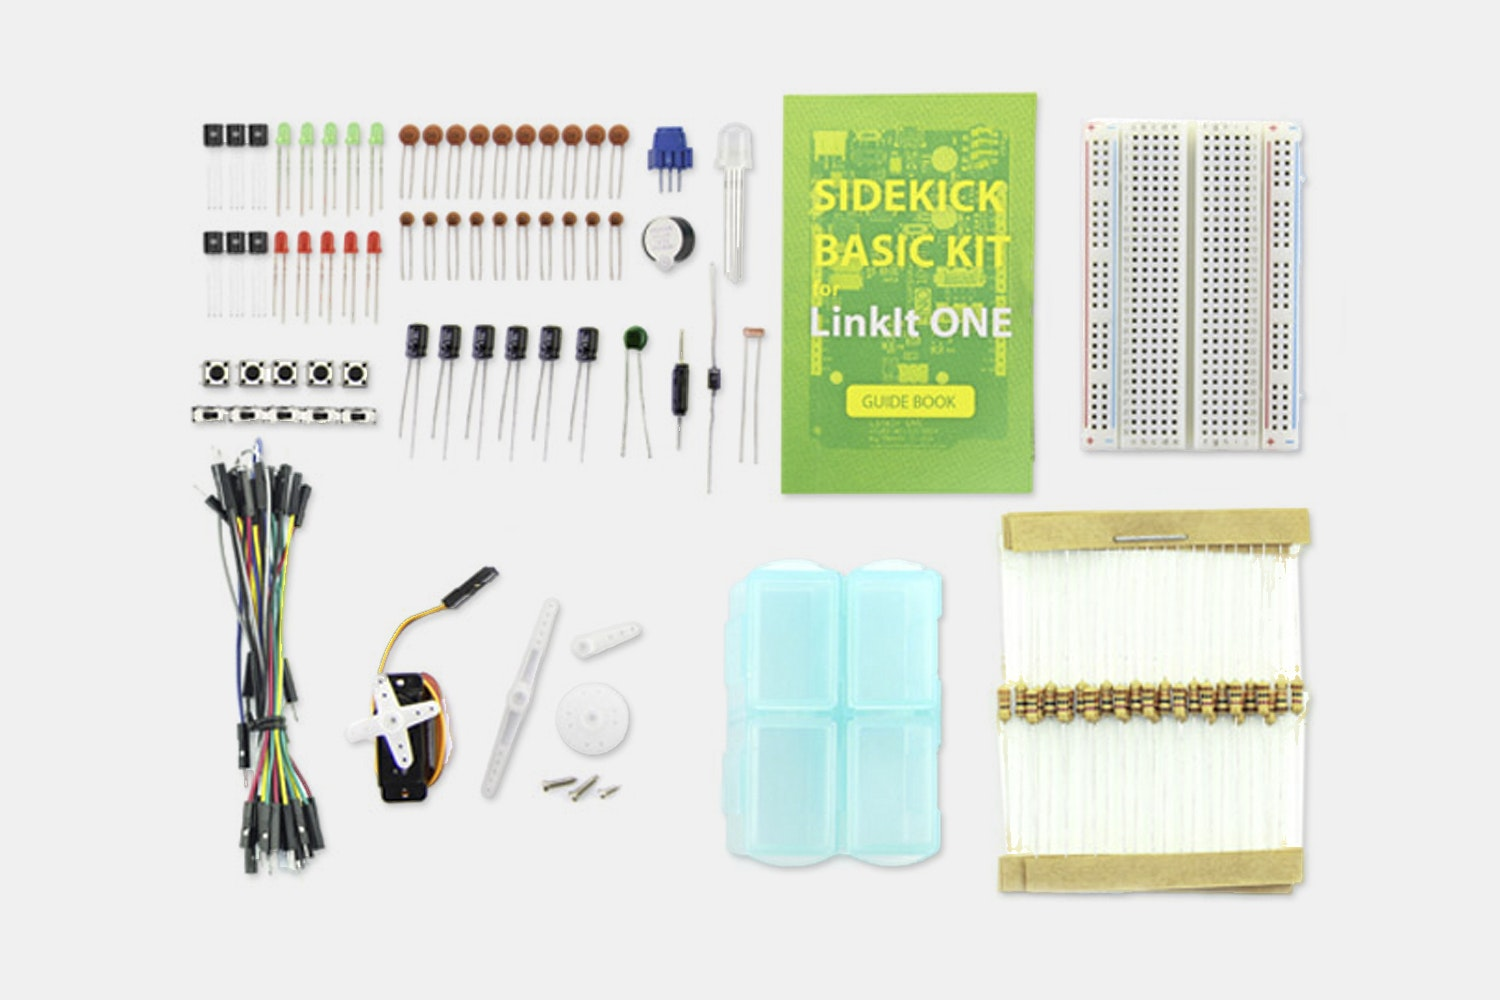 LinkIt ONE + Grove Starter Kit Bundle